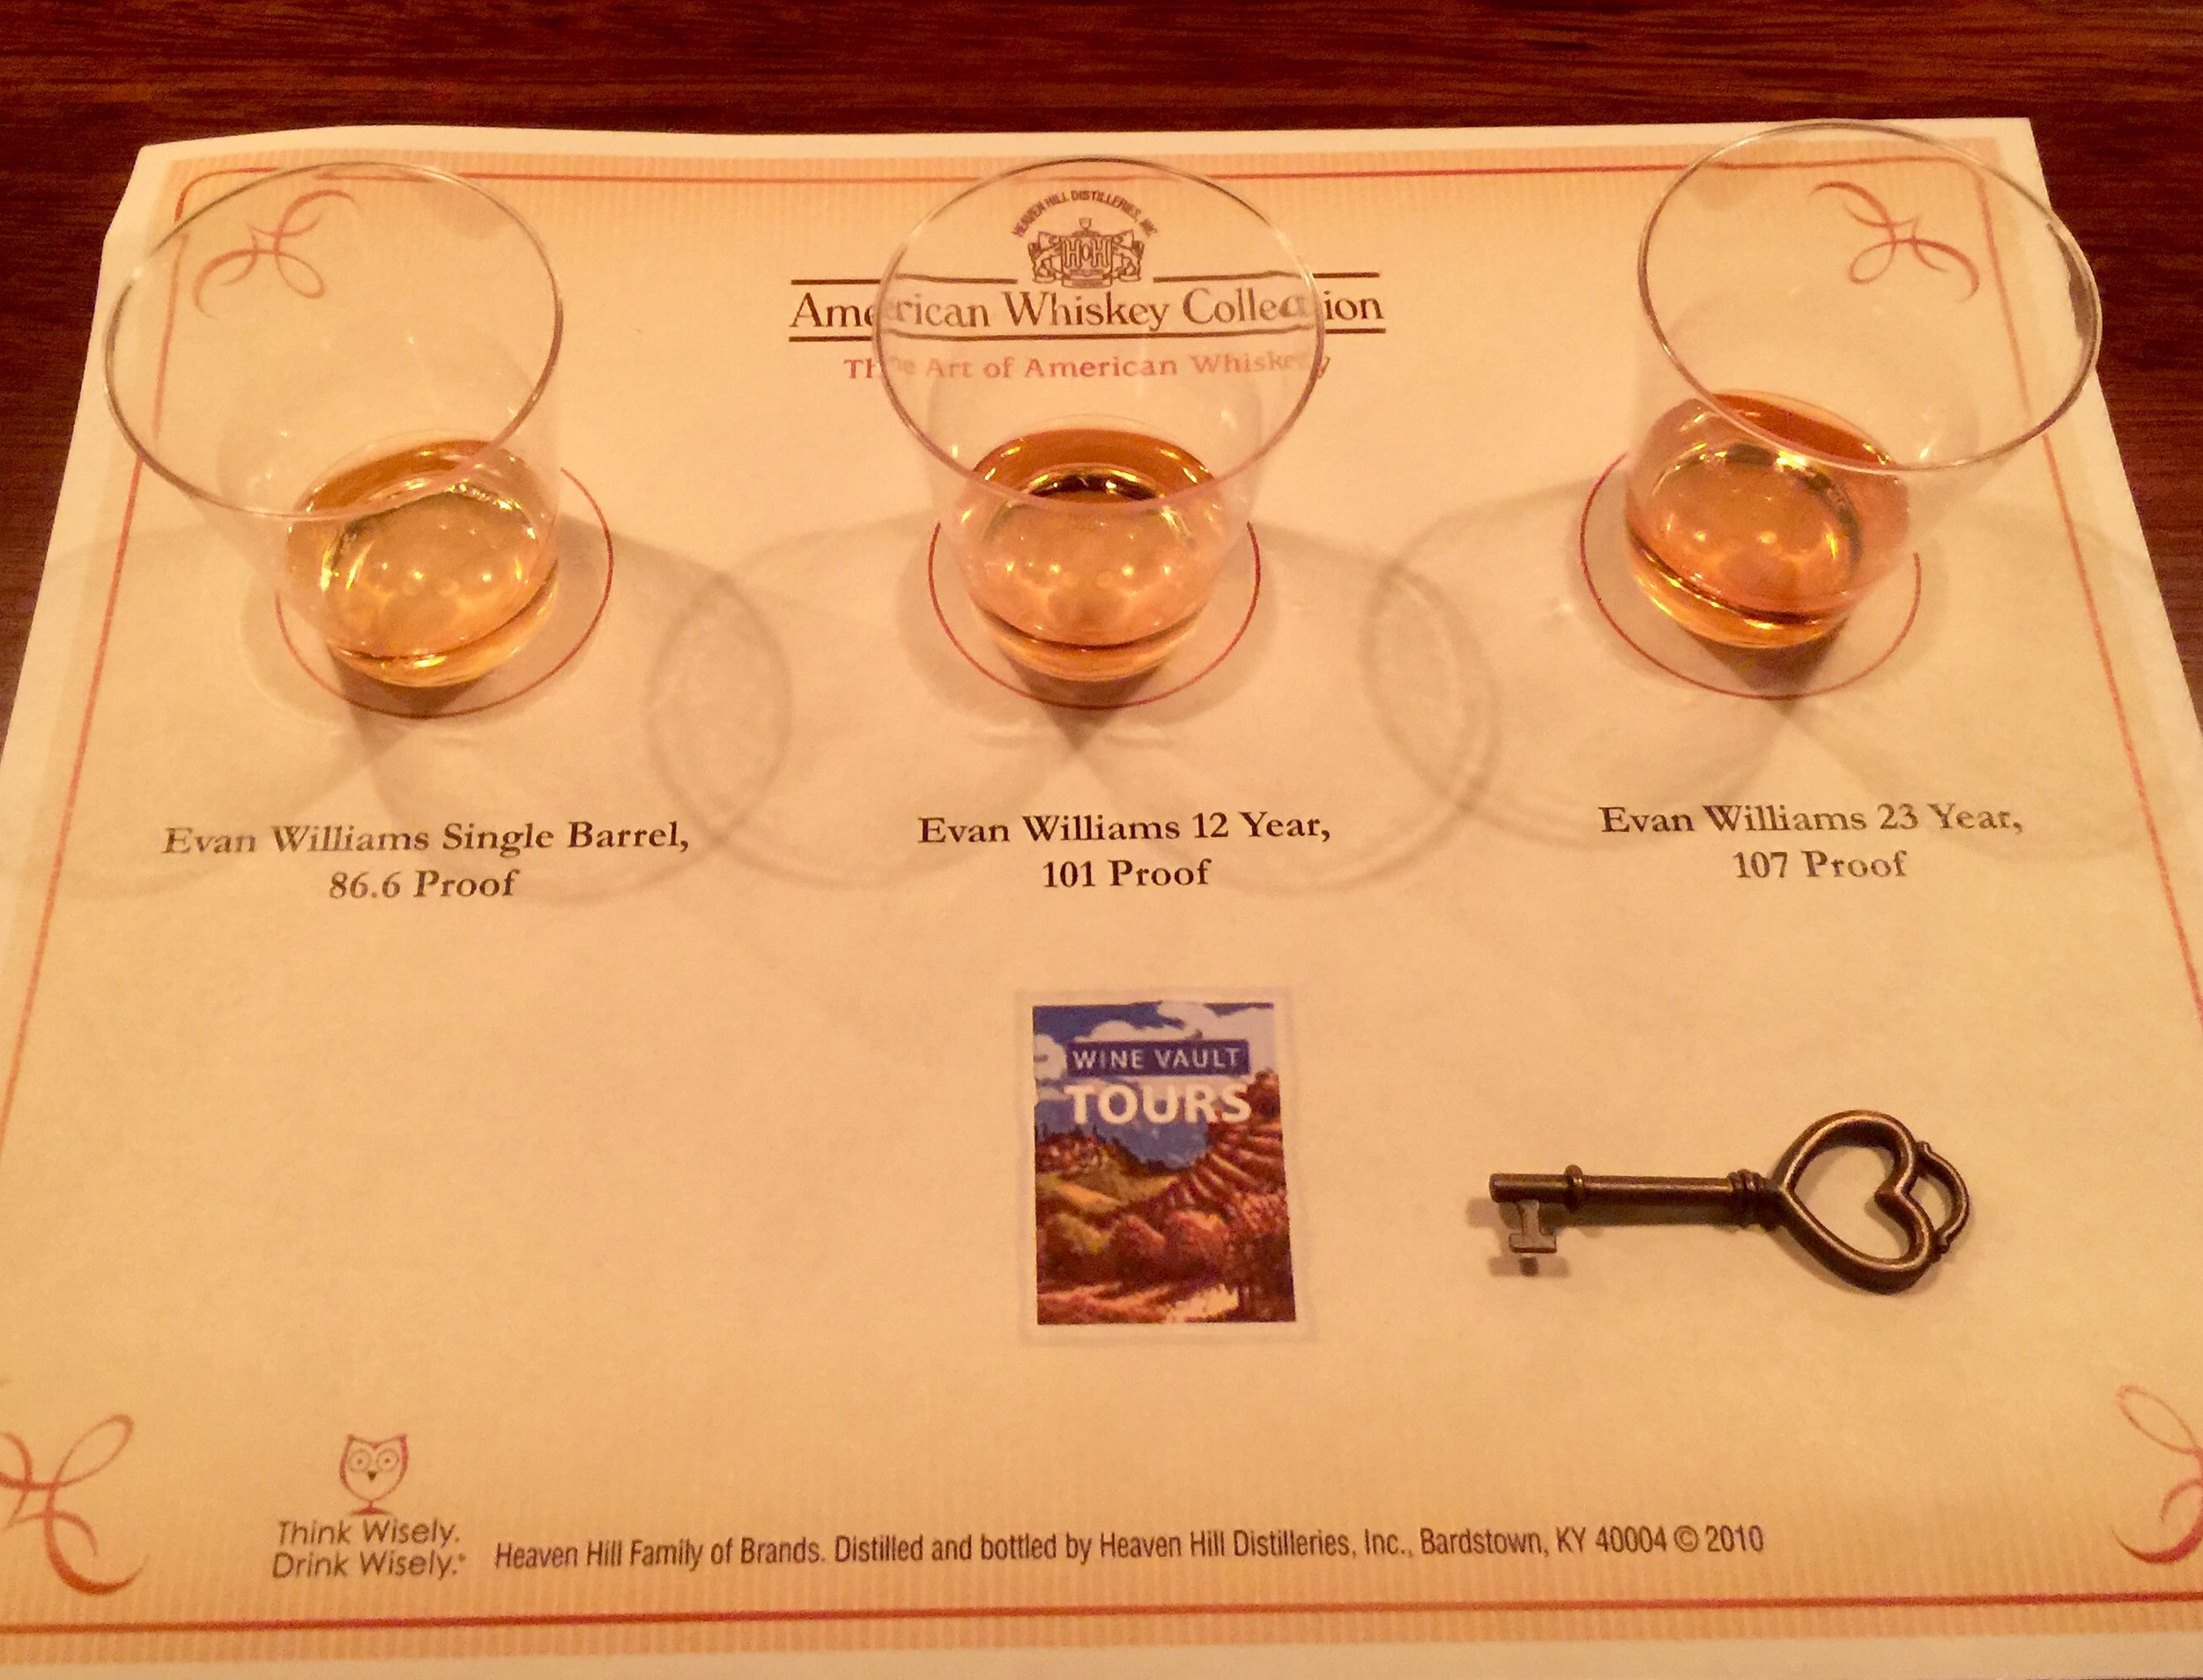 Wow!  What a line-up!  Drinking the really, really good stuff (including a 23-year-old) at the Evan Williams speakeasy bar.